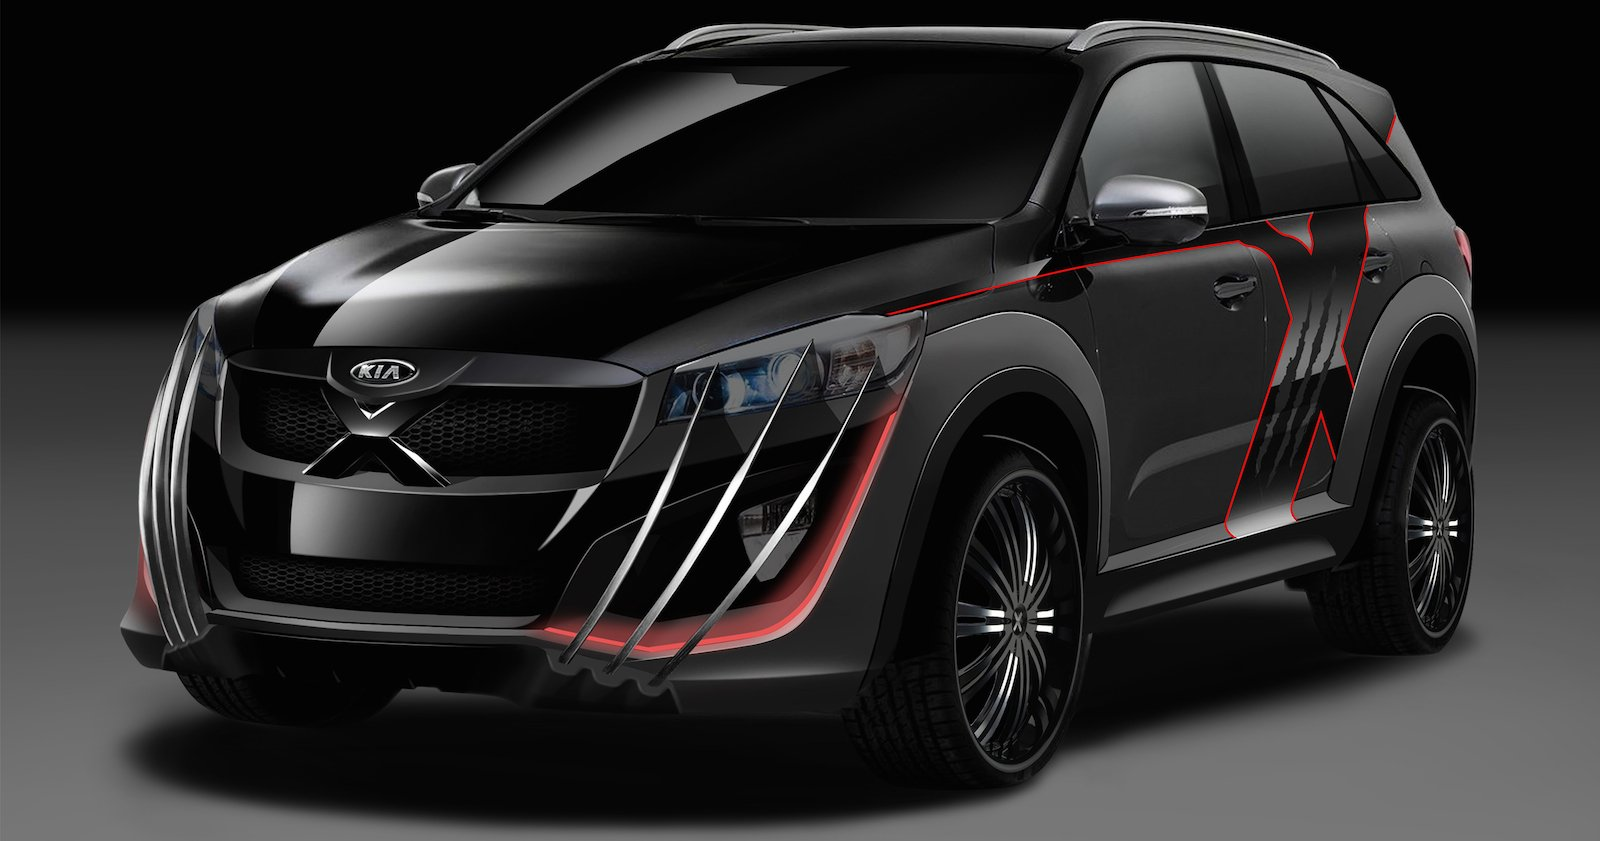 clawsome kia sorento x men edition to feature at 2015 australian open photos 1 of 10. Black Bedroom Furniture Sets. Home Design Ideas